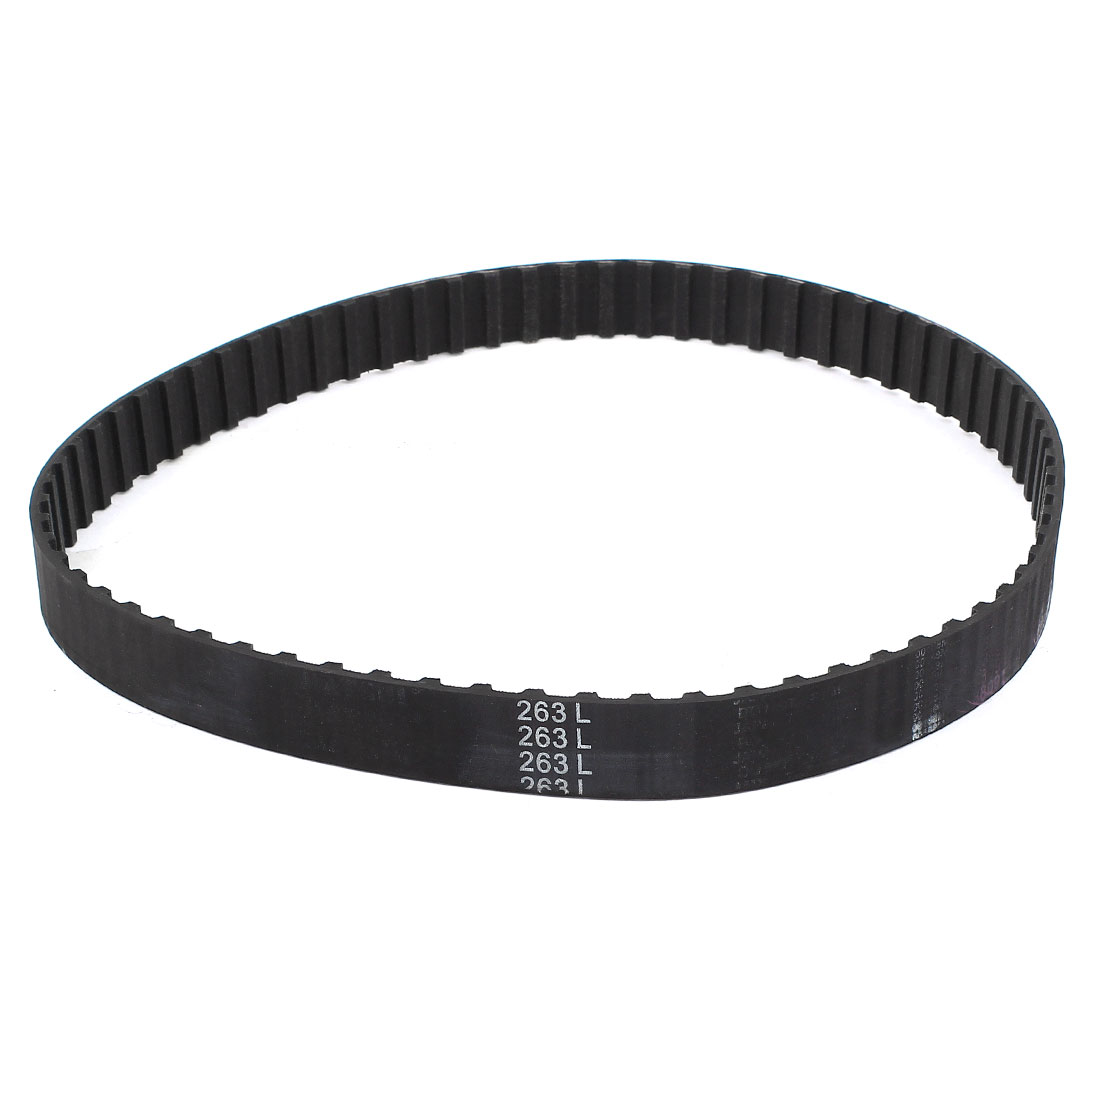 "263L 26.3"" Girth 9.525mm Pitch 70-Teeth Black Rubber Industrial Synchro Machine Synchronous Timing Belt"